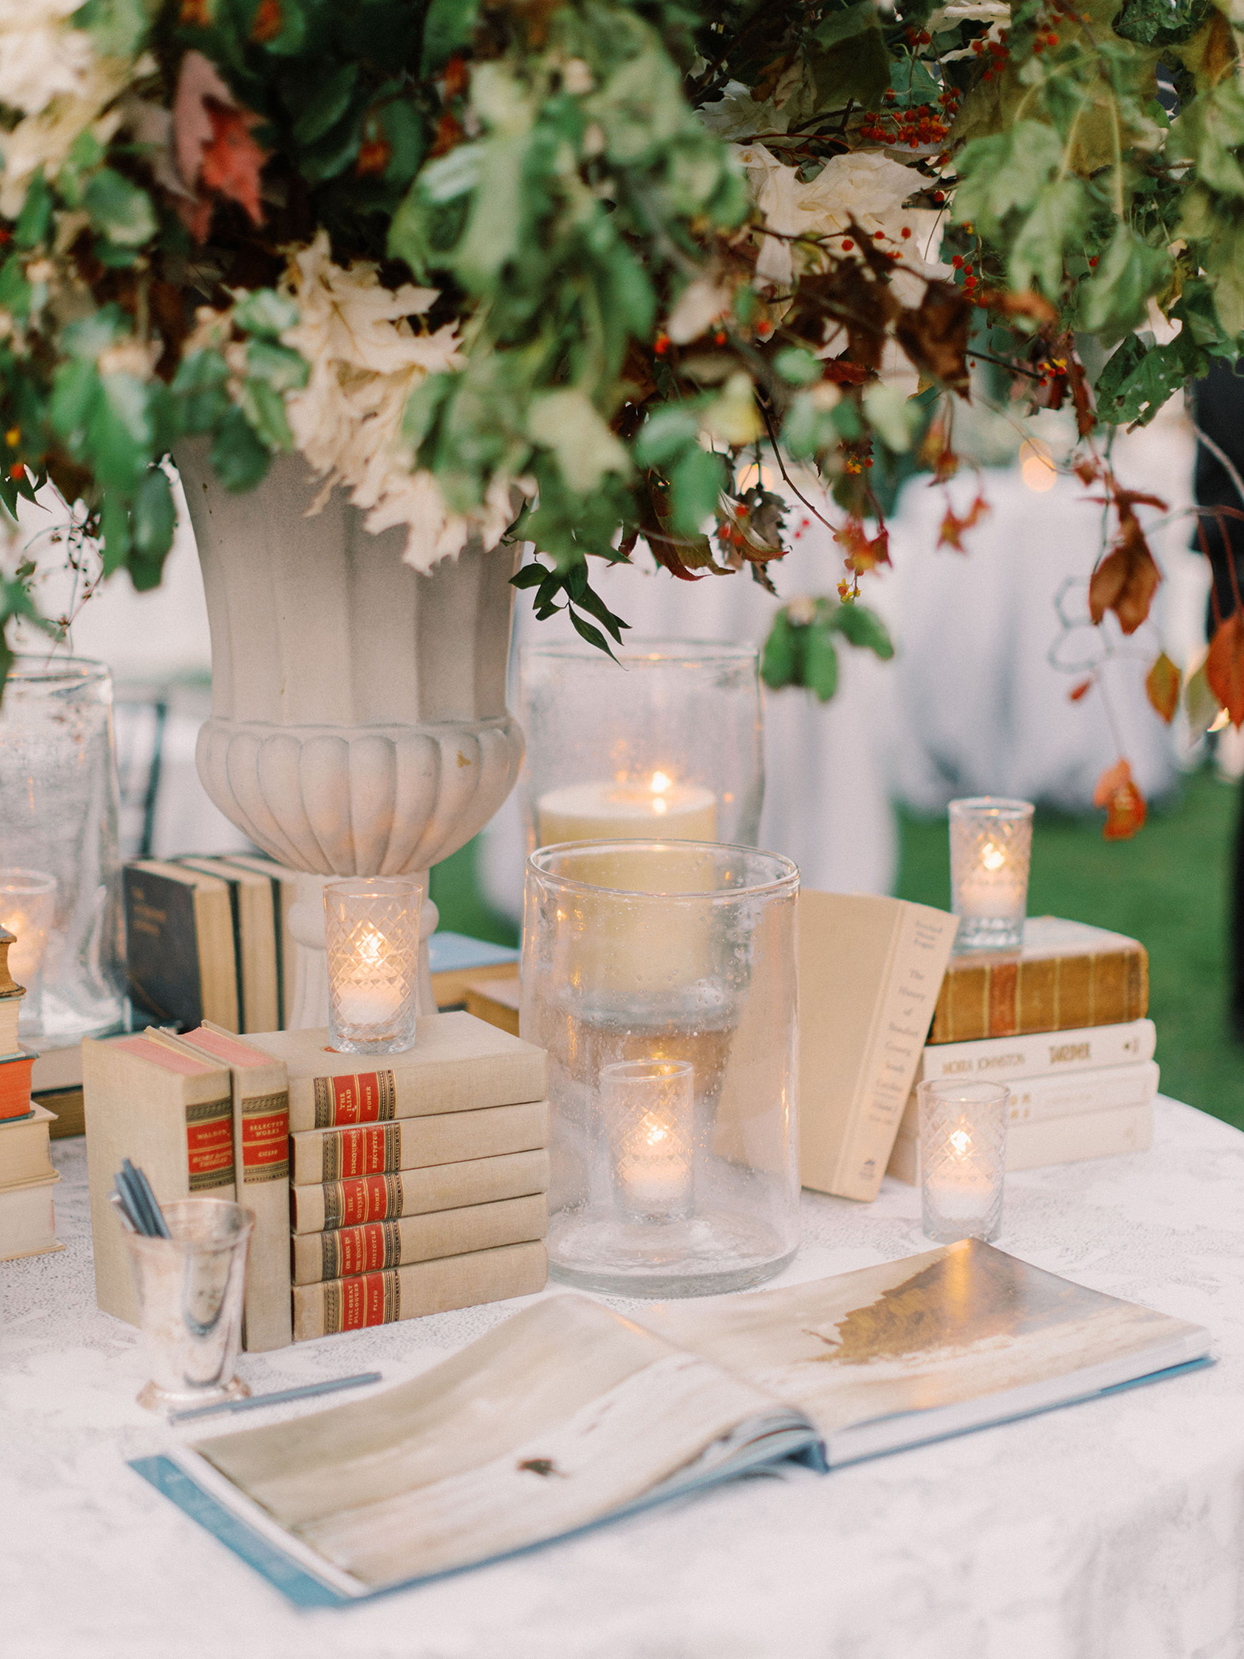 megan parking wedding guest book table with decorative antique books